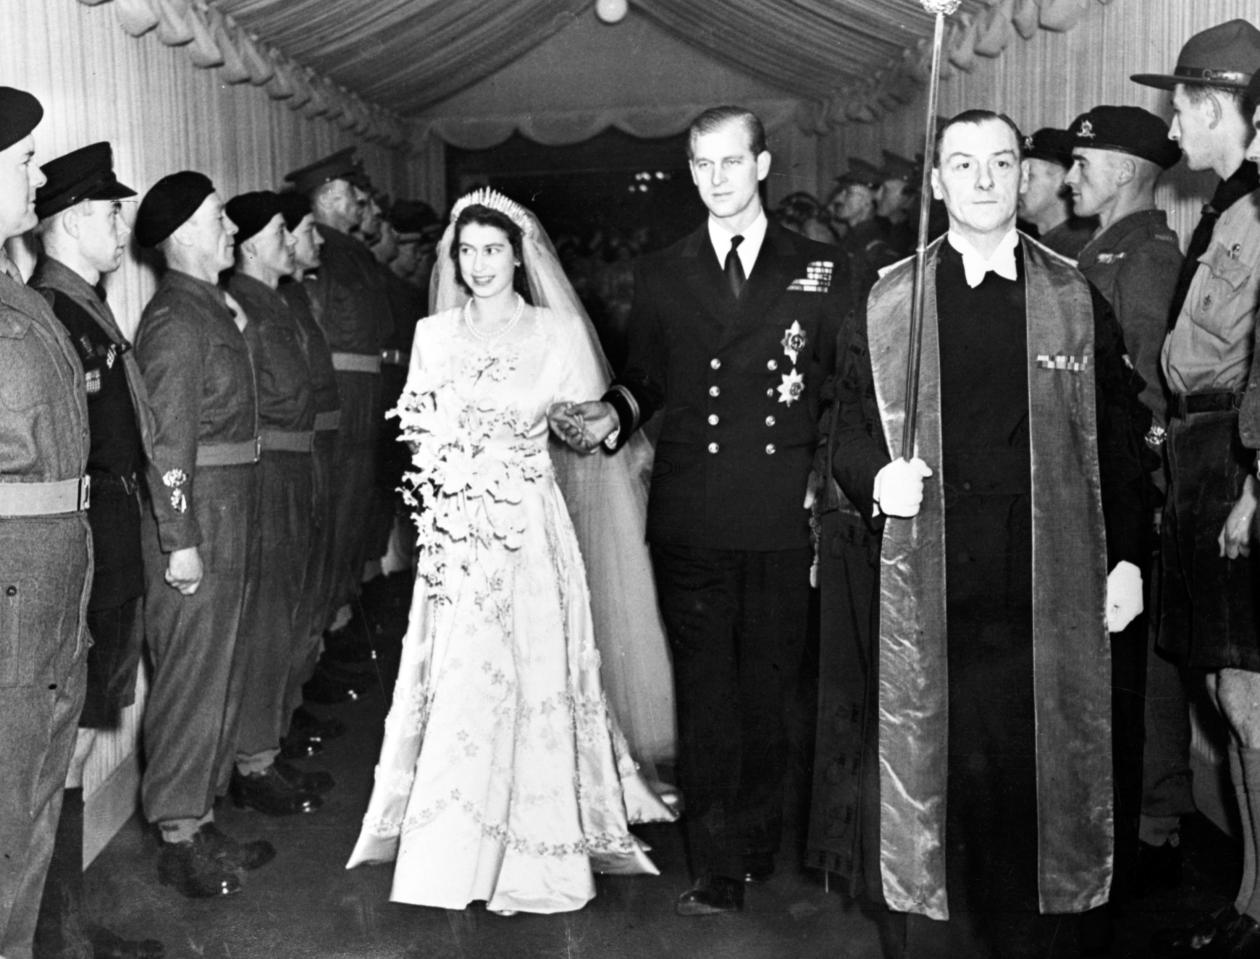 Britain's Princess Elizabeth and her husband the Duke of Edinburgh are seen leaving Westminster Abbey, London, on Nov. 20, 1947, following their wedding service. (AP Photo)